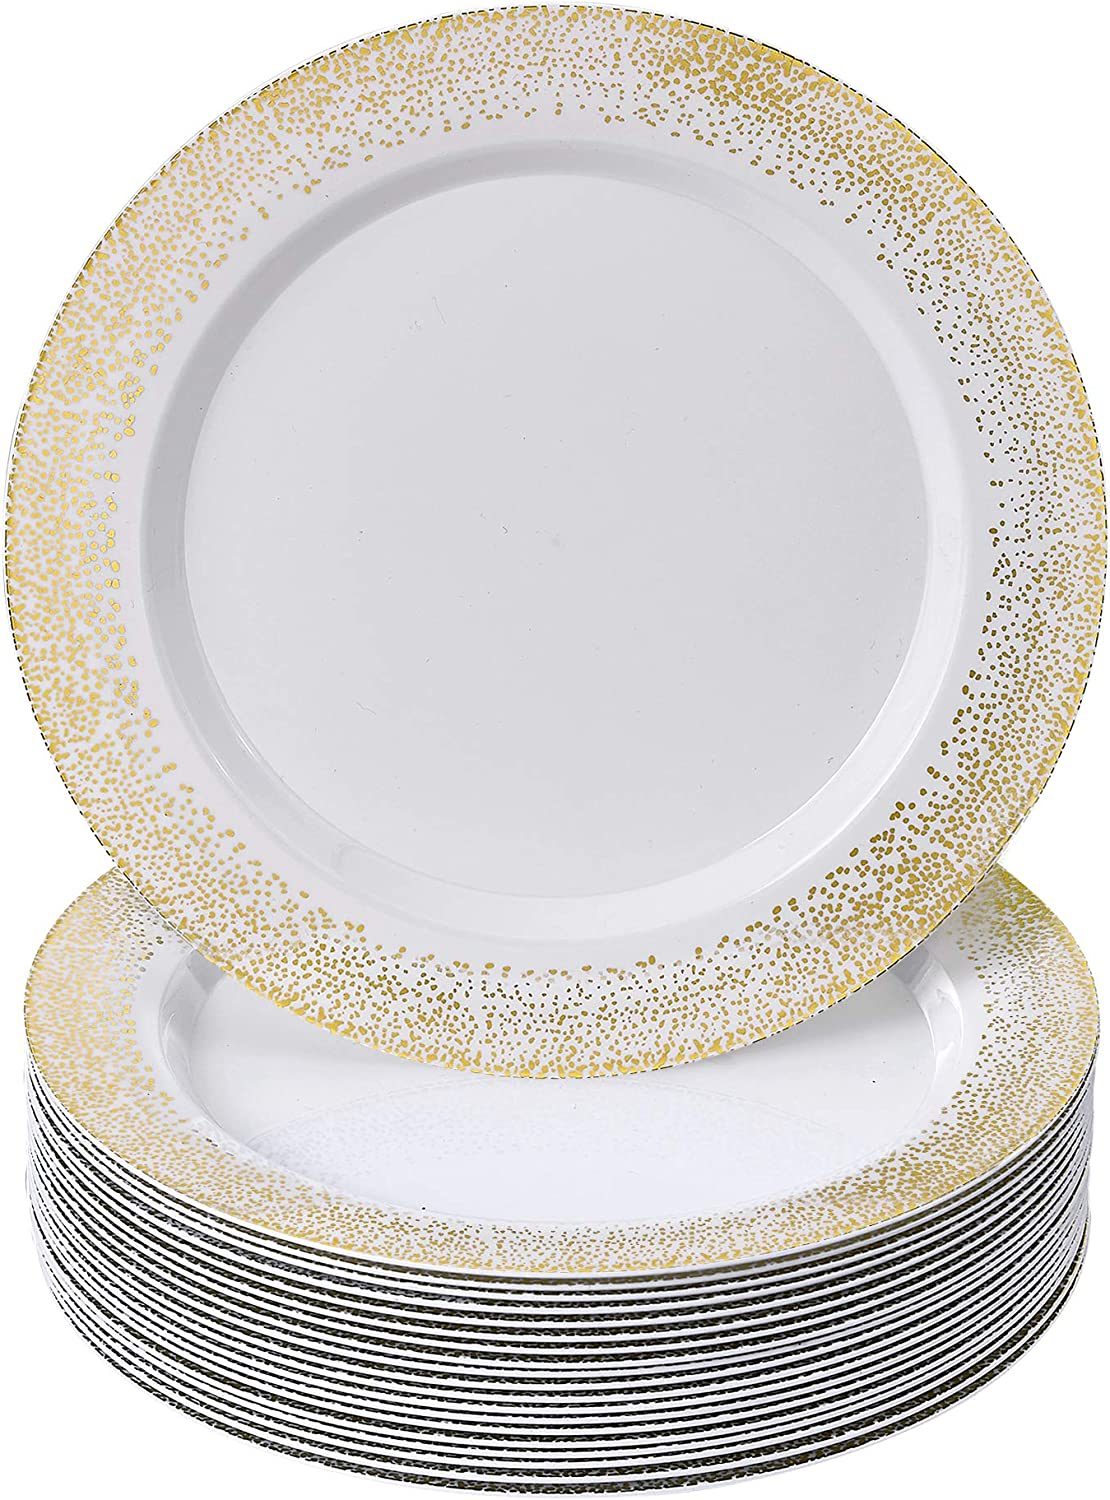 Silver Challenge Kansas City Mall the lowest price Spoons Mist Collection Disposable Dinnerware Dinn Plates